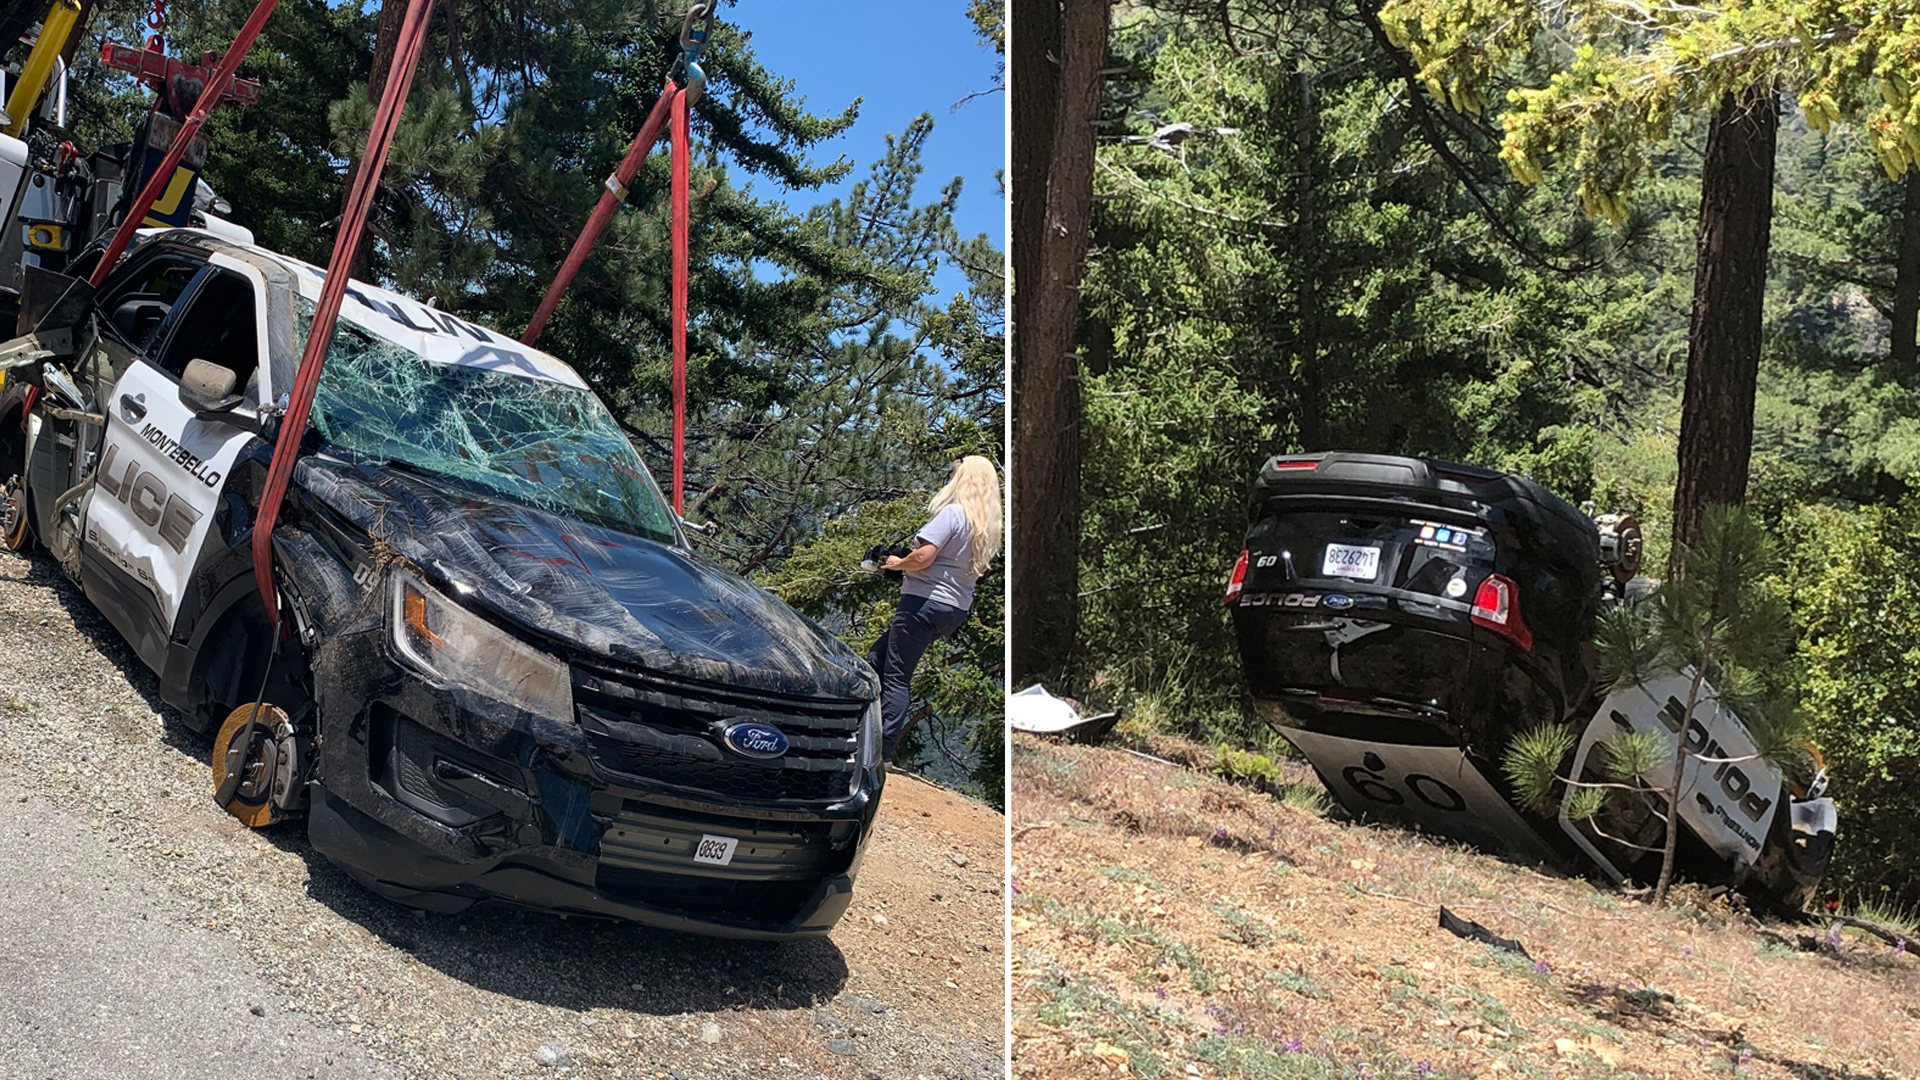 A stolen Montebello police car is pulled from the side of an embankment on June 18, 2019. (Credit: Montebello Police Department)